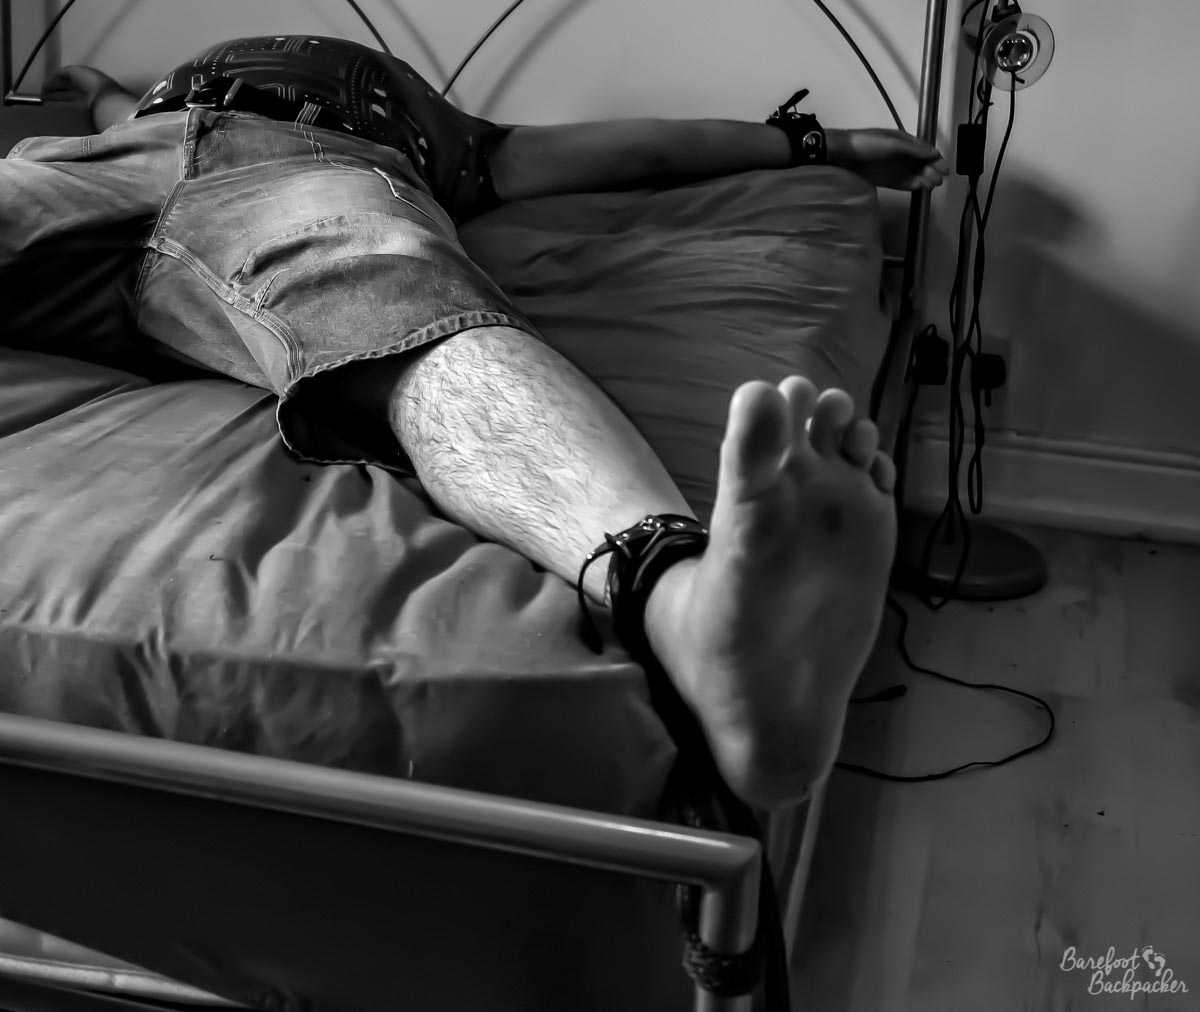 Man tied spread-eagled to a king-sized bed. He's wearing a t-shirt and long denim shorts, and is barefoot – his left foot is centred and focused. The image is in black&white.